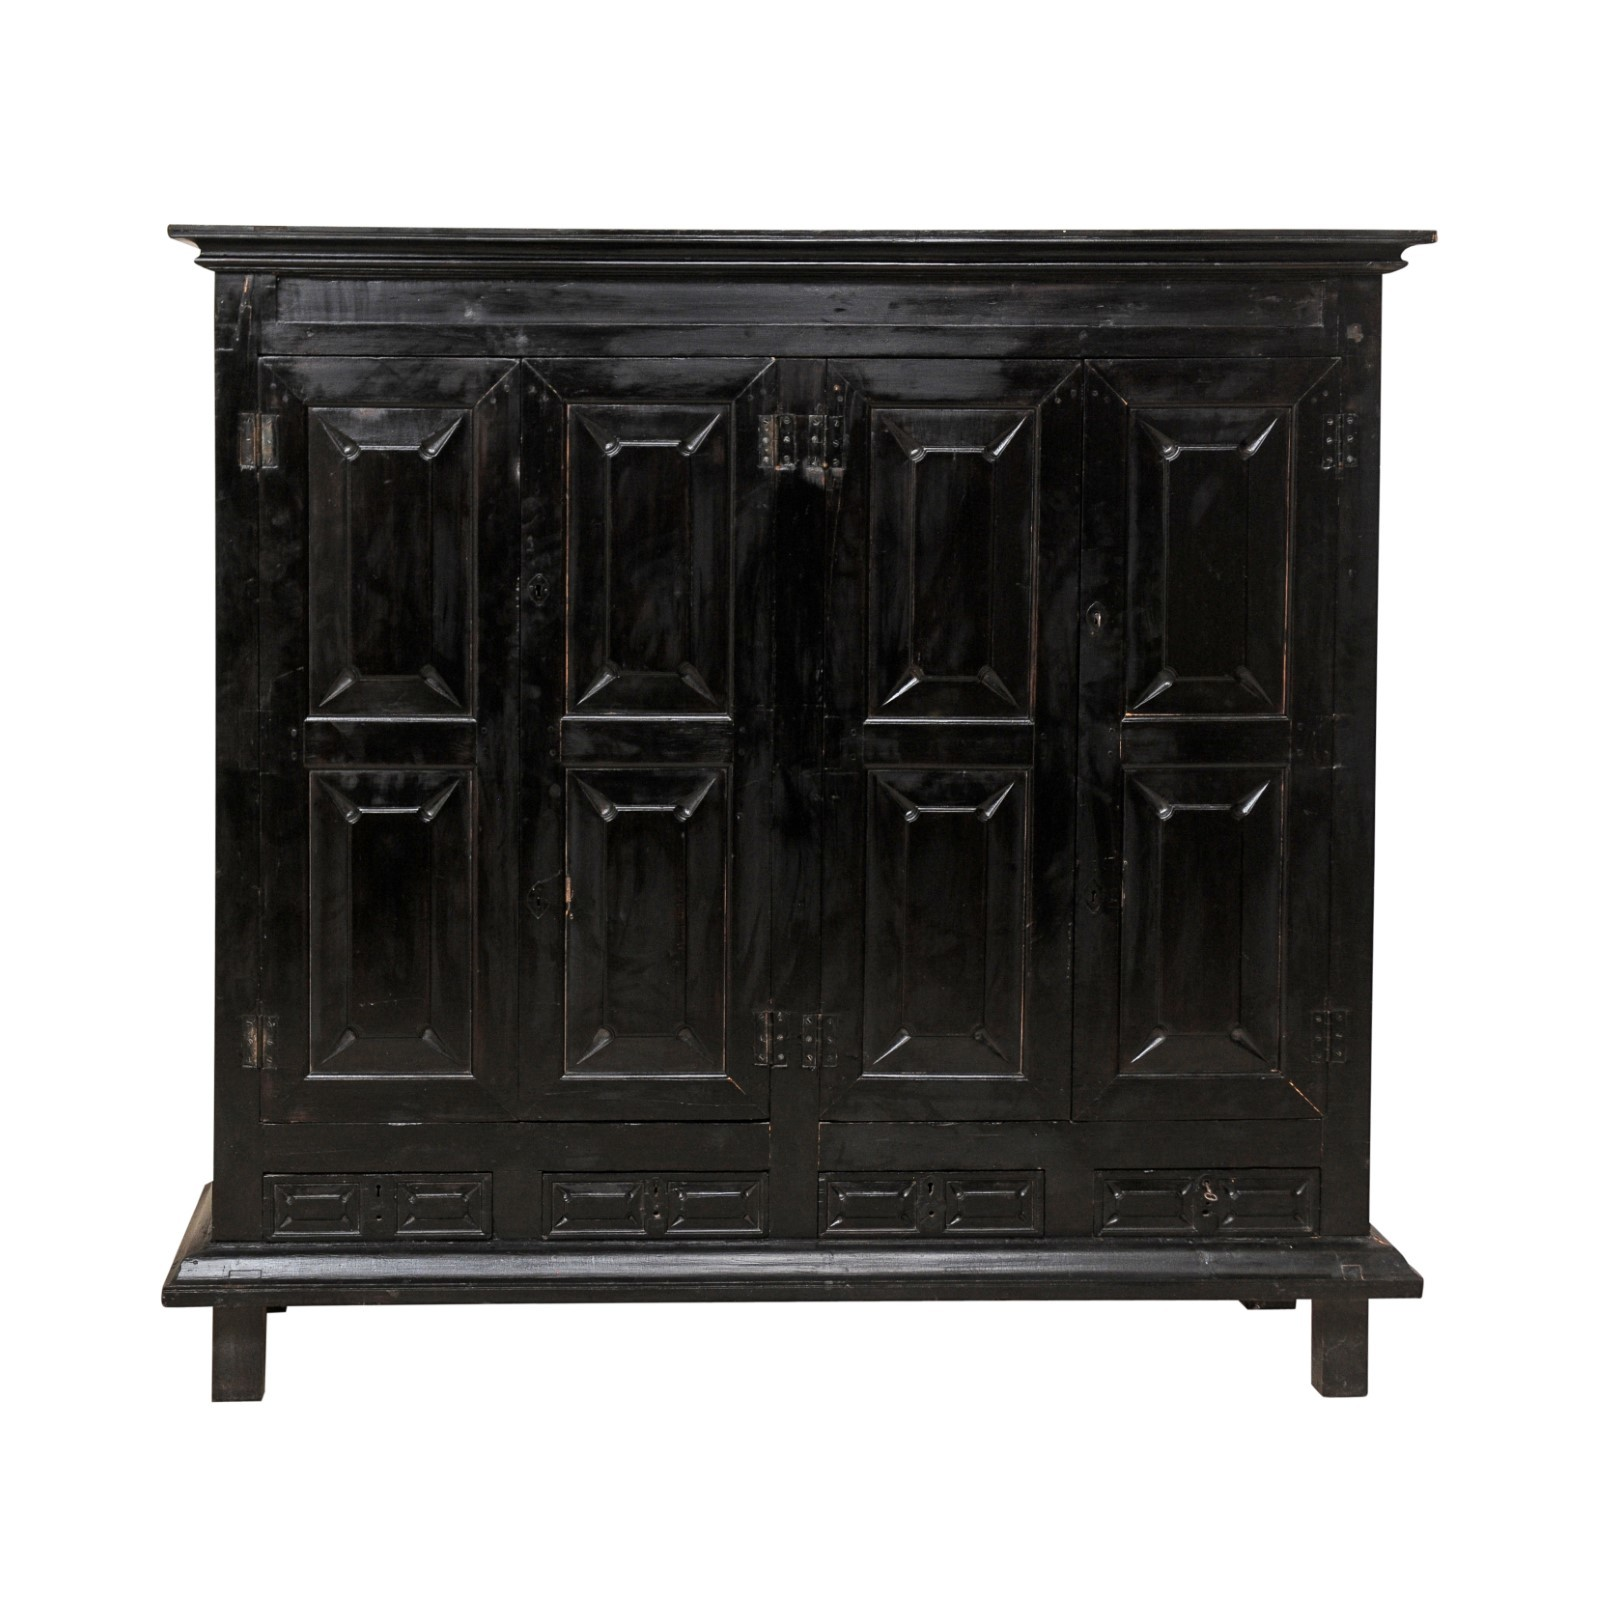 British Colonial Cabinet, 6.5 ft Tall